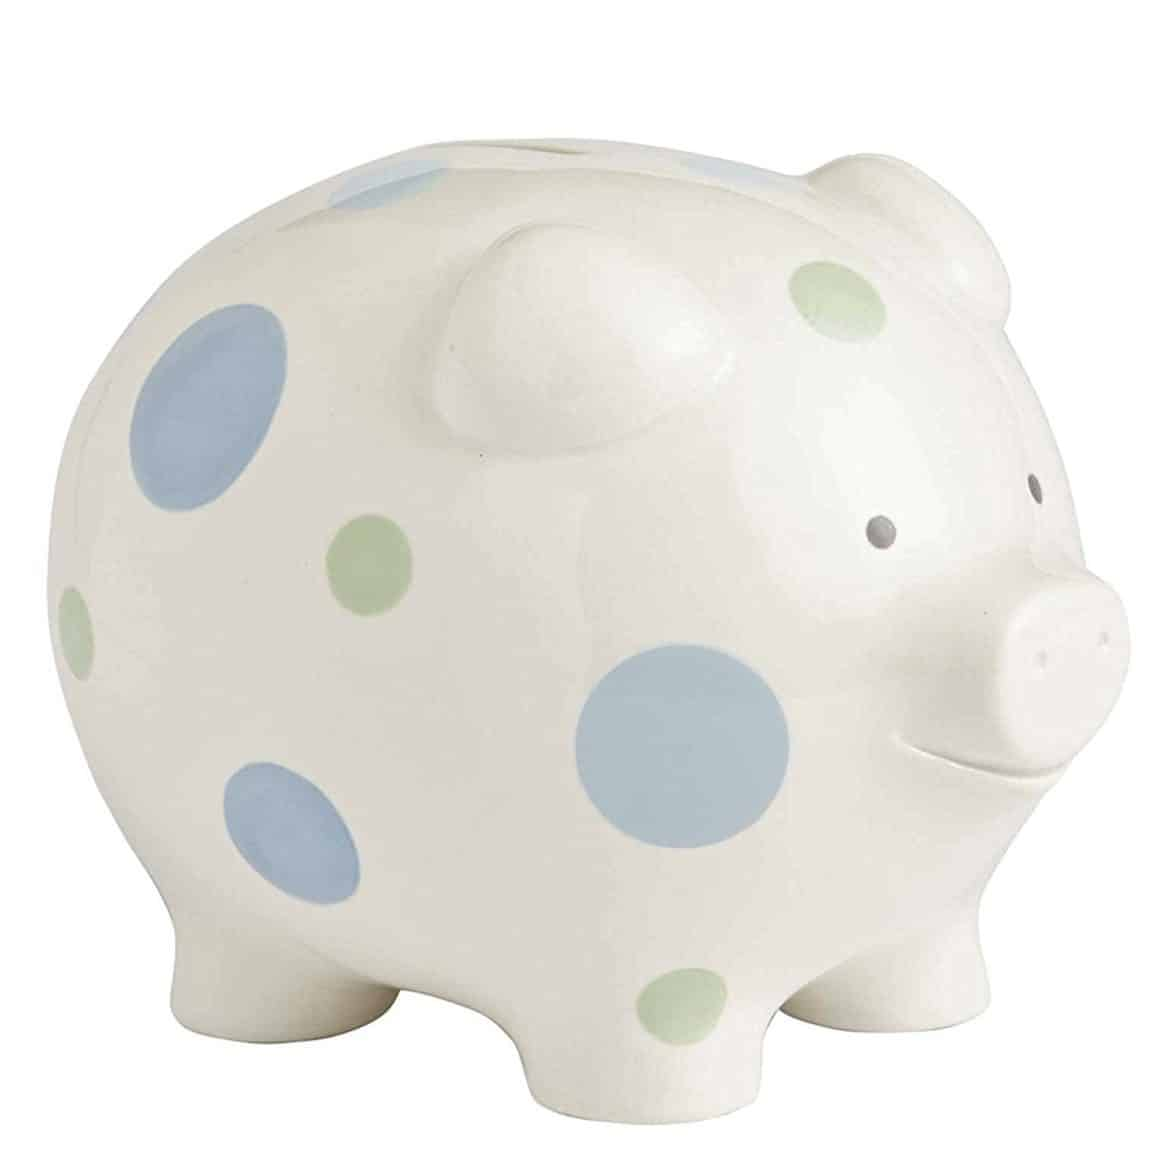 Beginnings by Enesco Big Polka Dot Piggy Bank, 7 inches, Blue